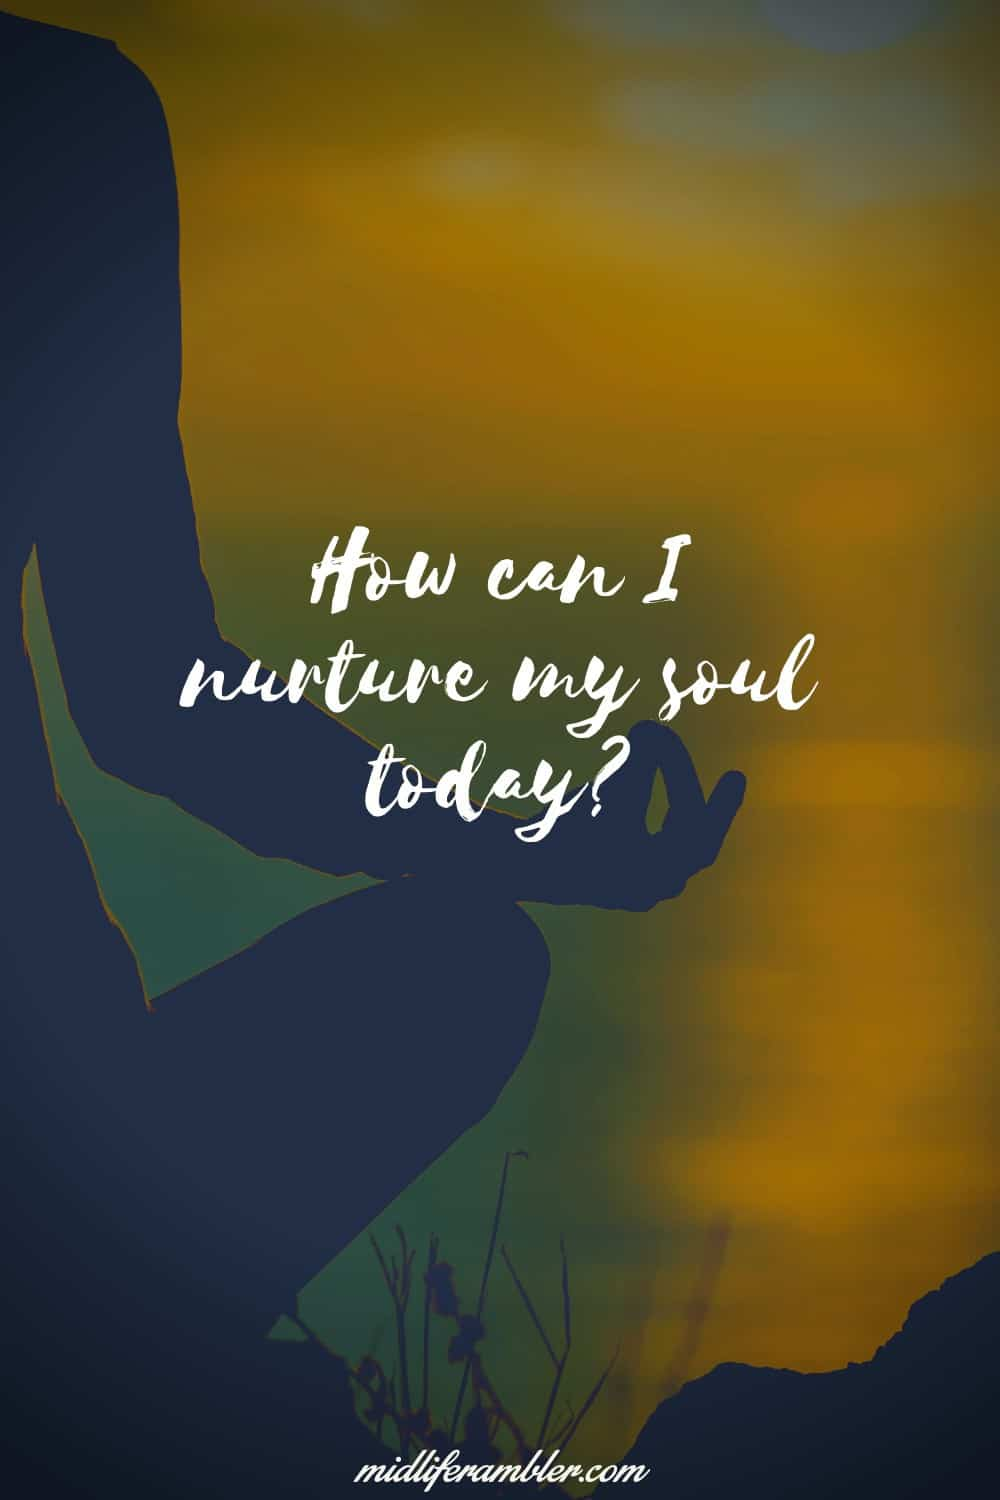 Affirmations for Self-Compassion - How can I nurture my soul today?